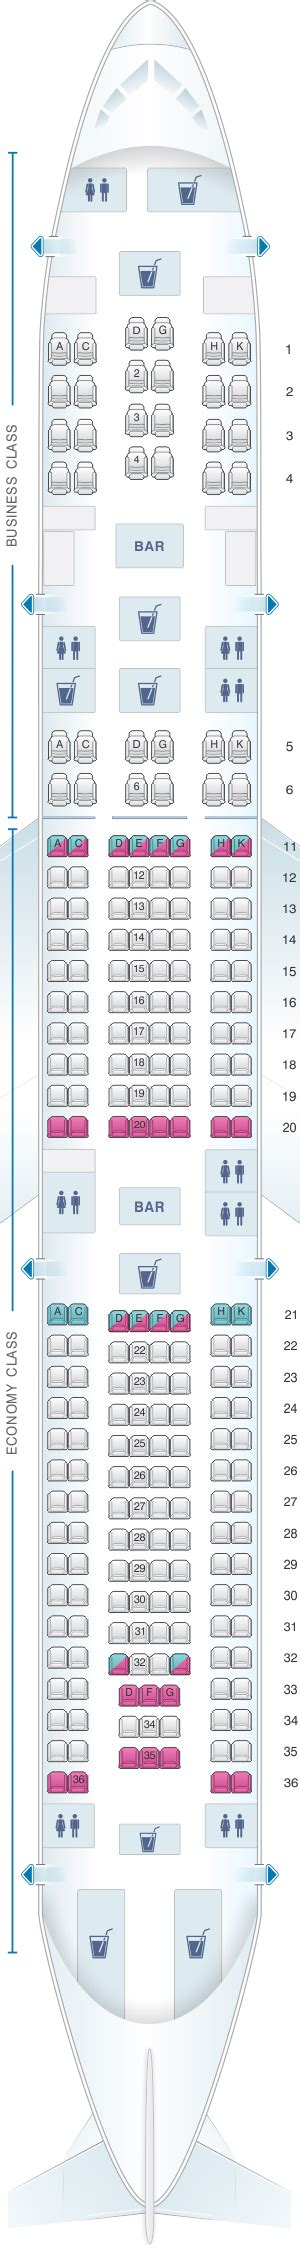 iberia airbus a340 500 seat map plan de cabine hi fly airbus a340 500 tfx tfw 237pax